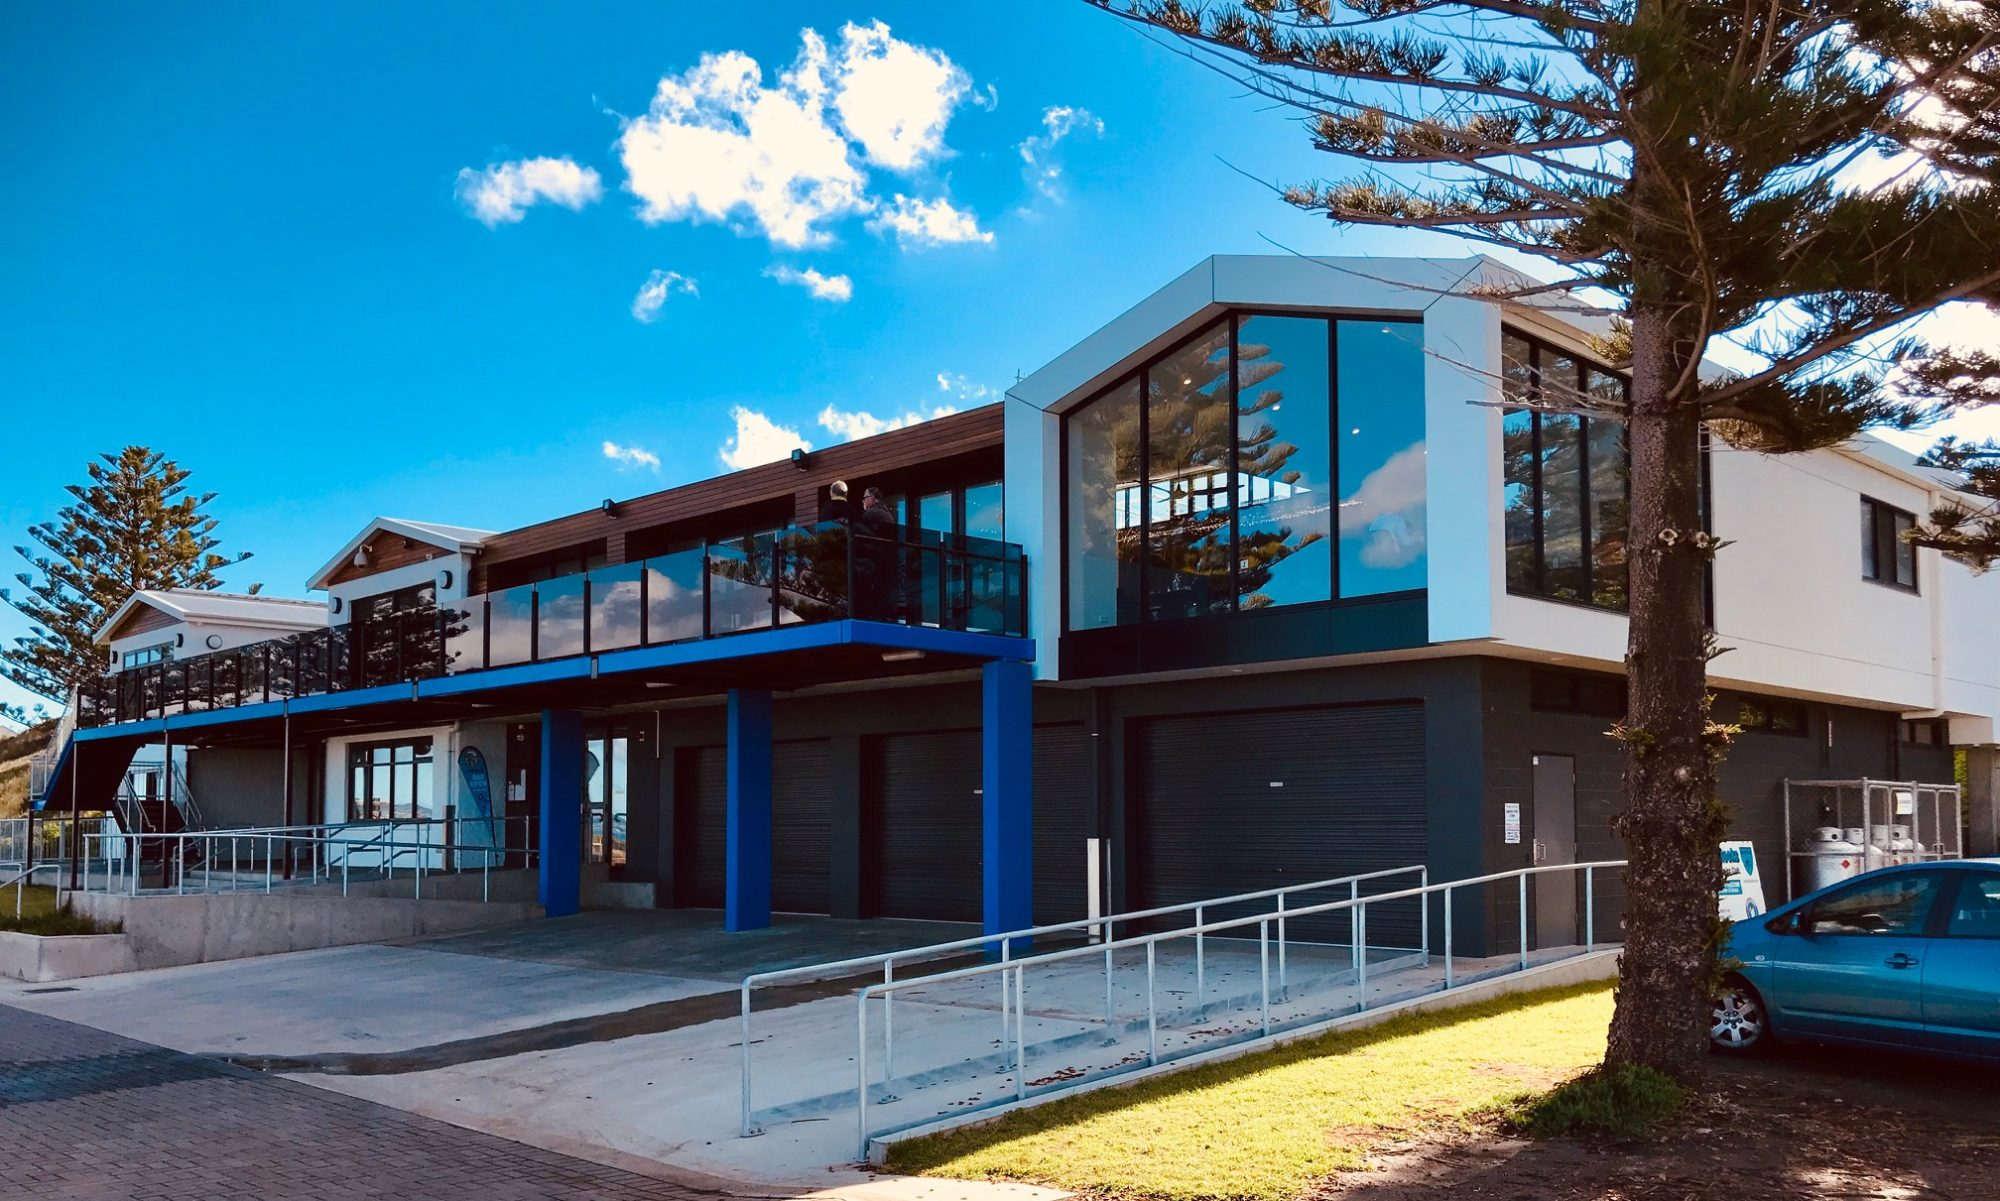 Chiton Rocks Surf Lifesaving Club